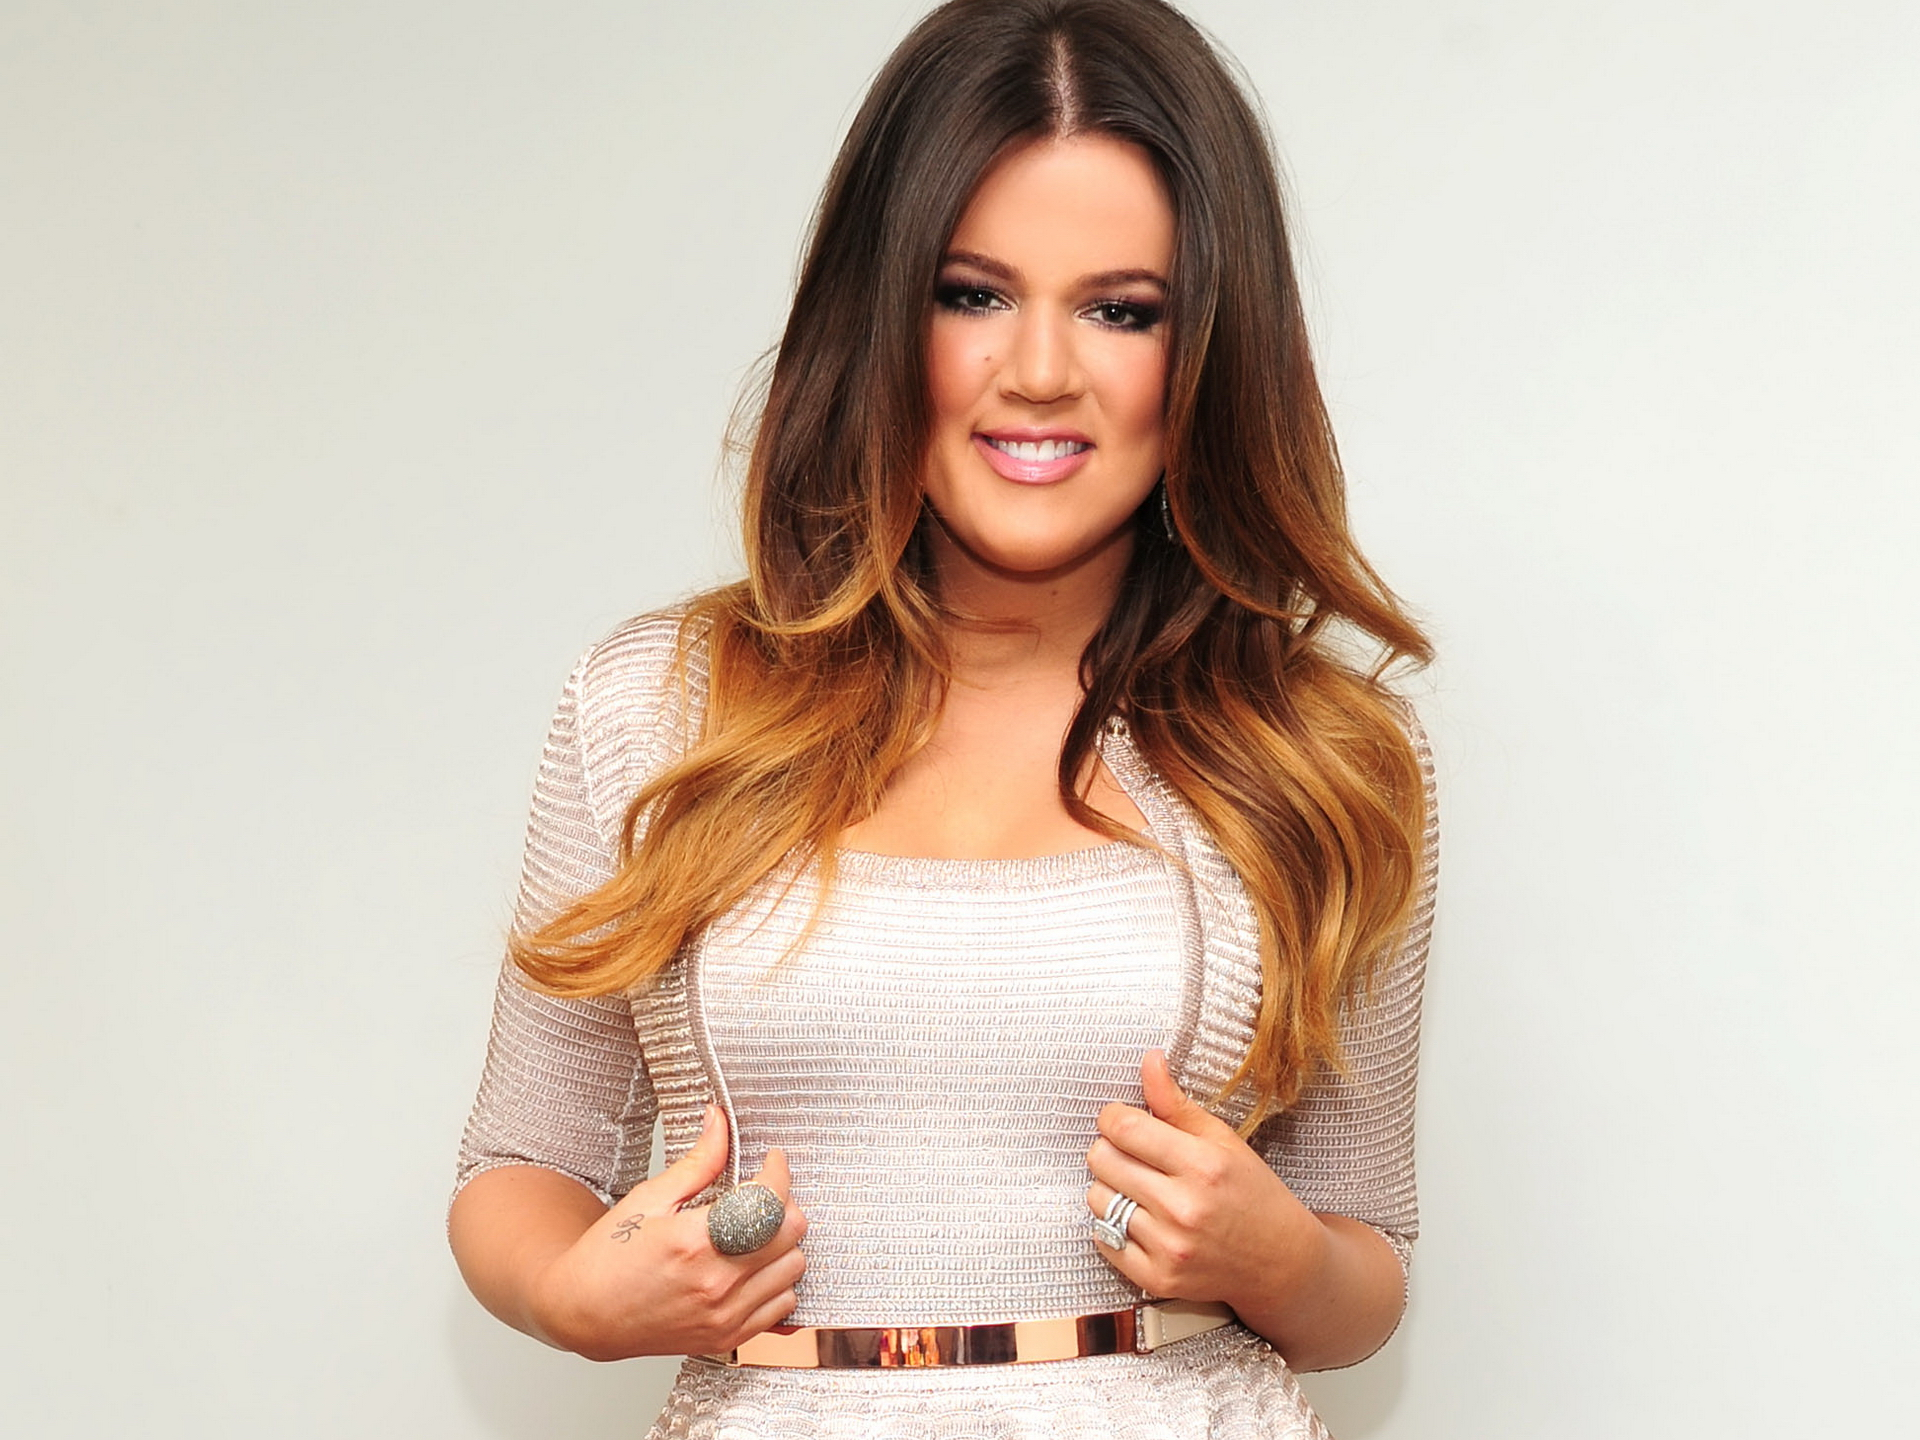 Khloe Kardashian Hd Widescreen 11 HD Wallpapers